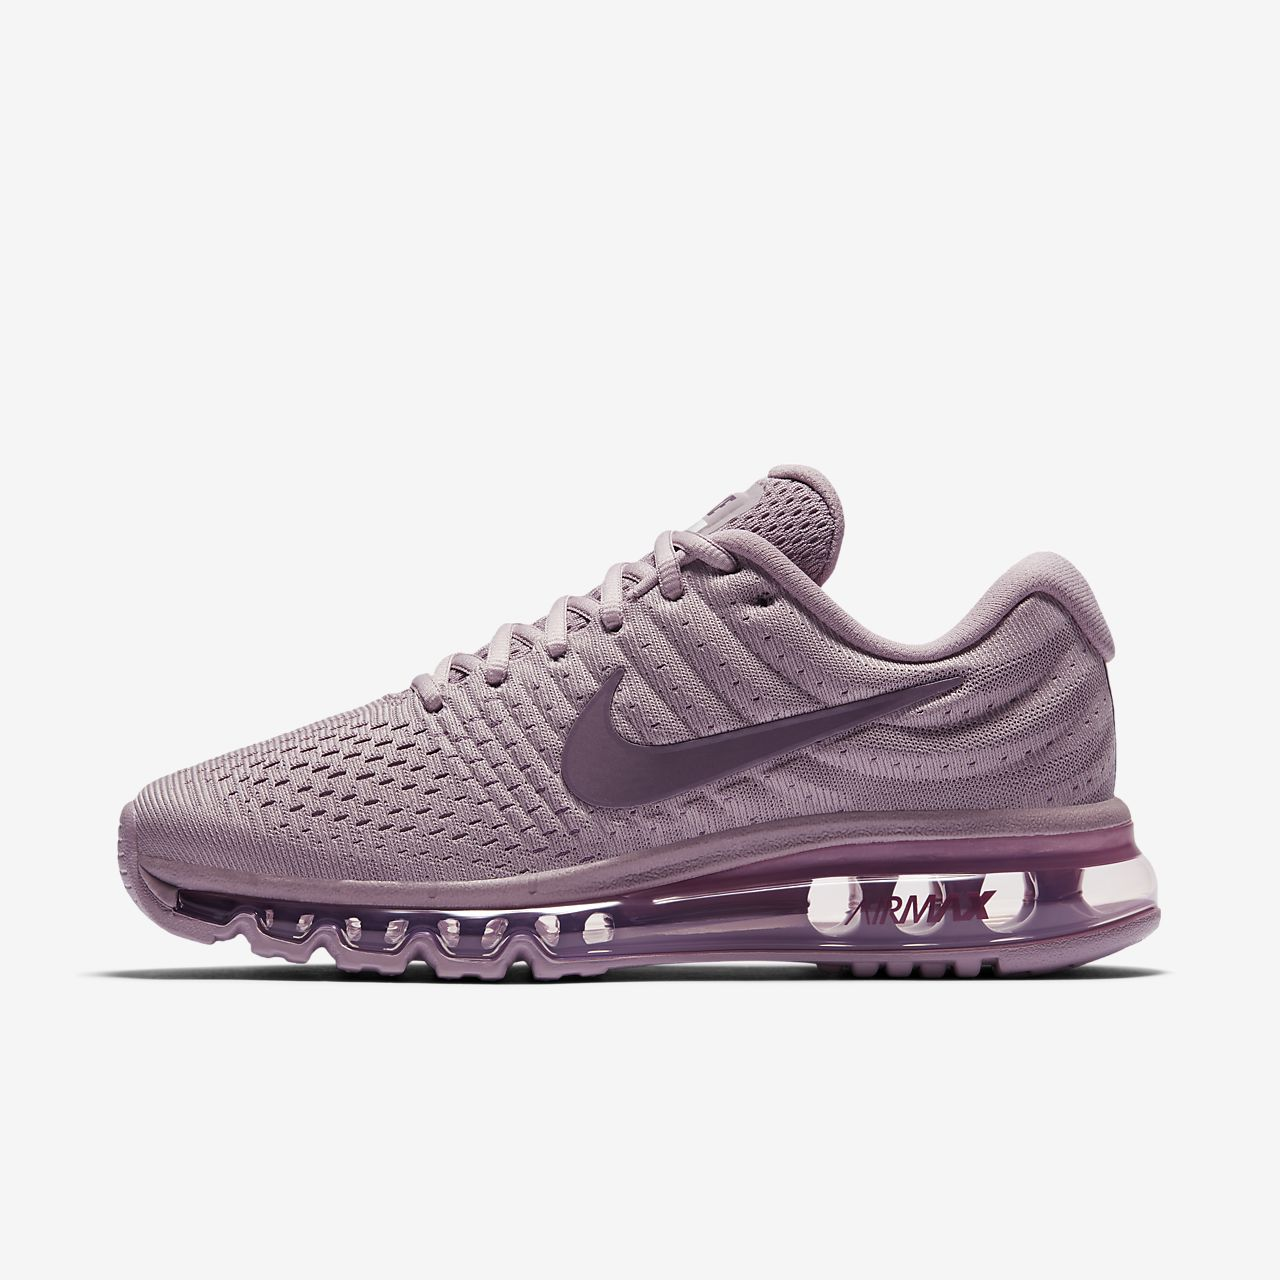 Nike Air Max 2017 Women's Shoe